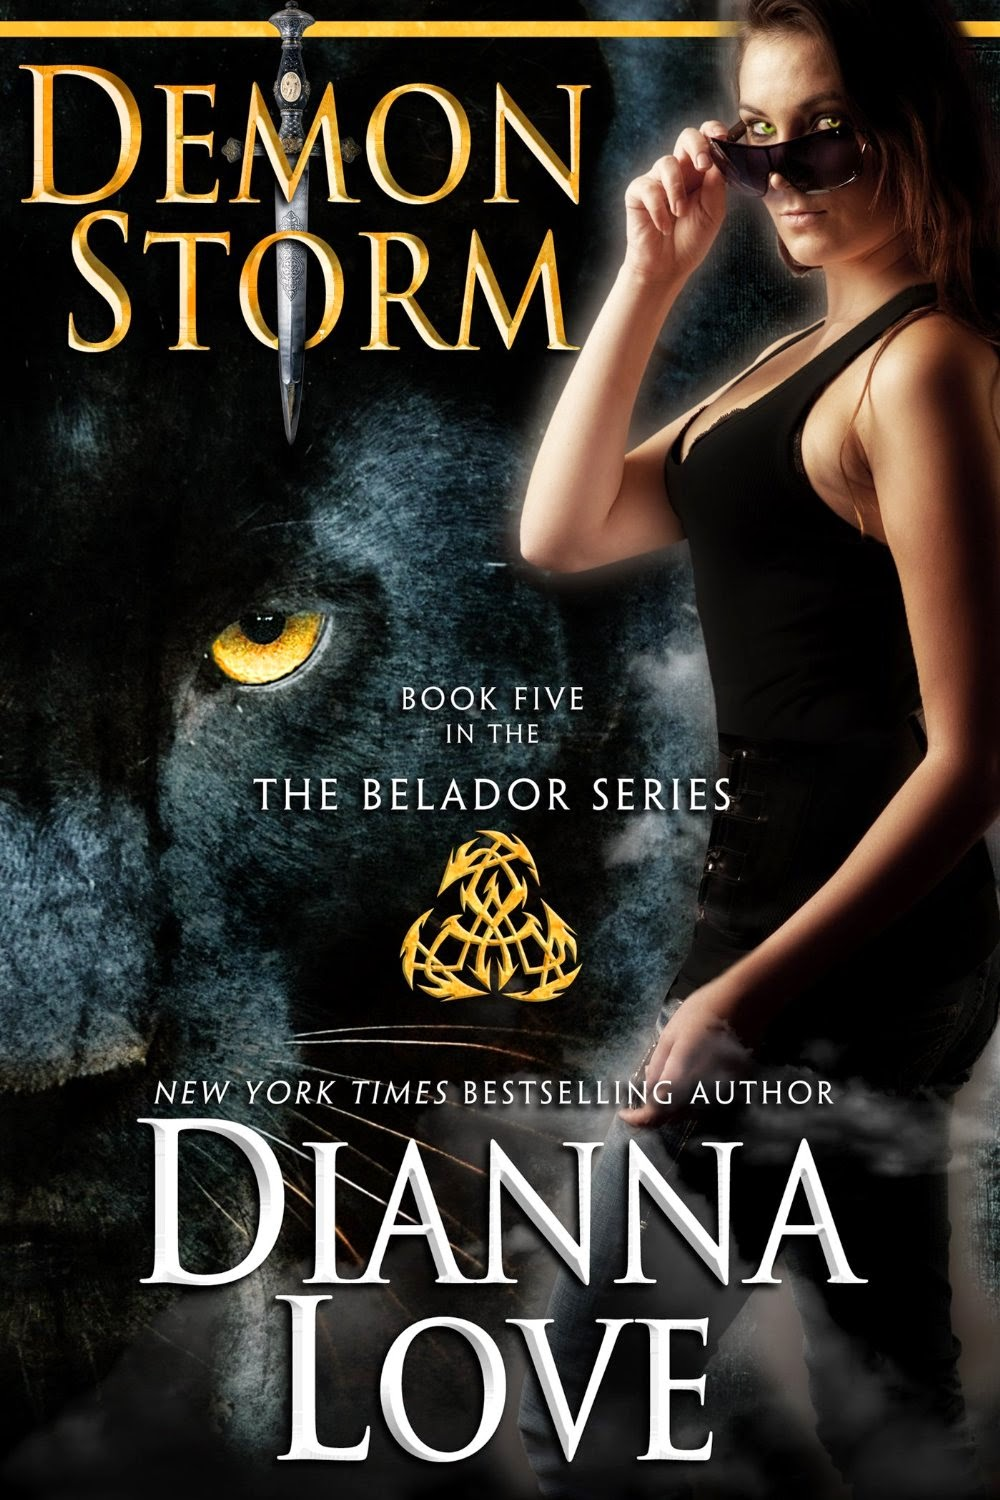 Demon Storm (Belador #5) by Dianna Love (PNR/UF)